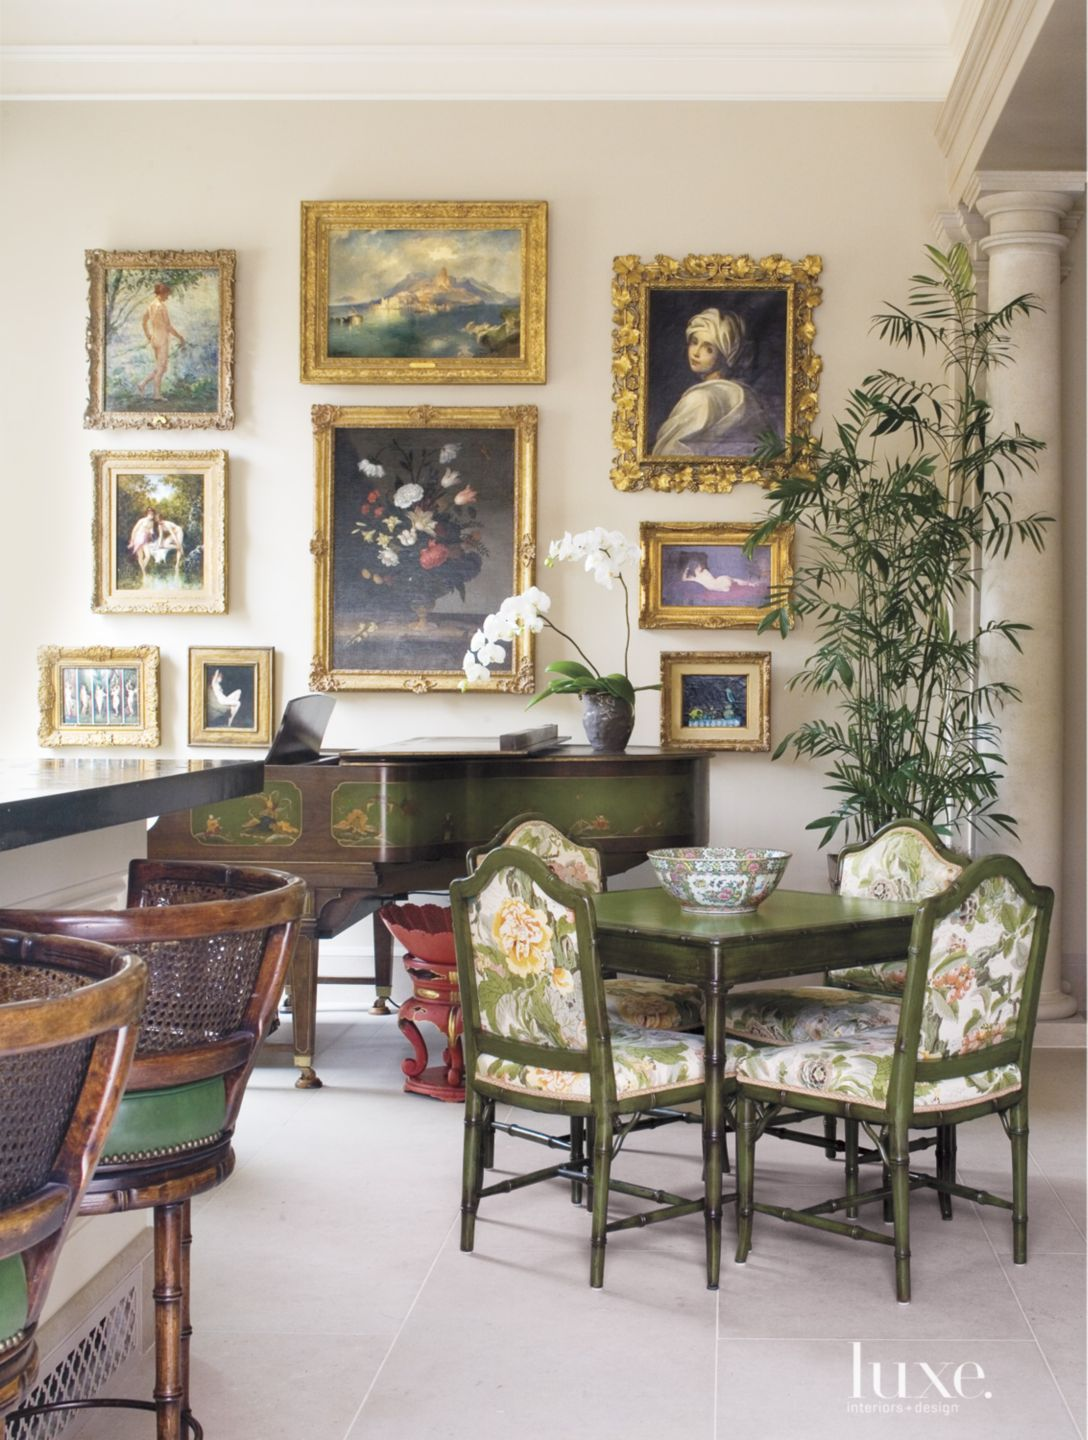 Traditional Cream Gallery Wall with Framed Paintings